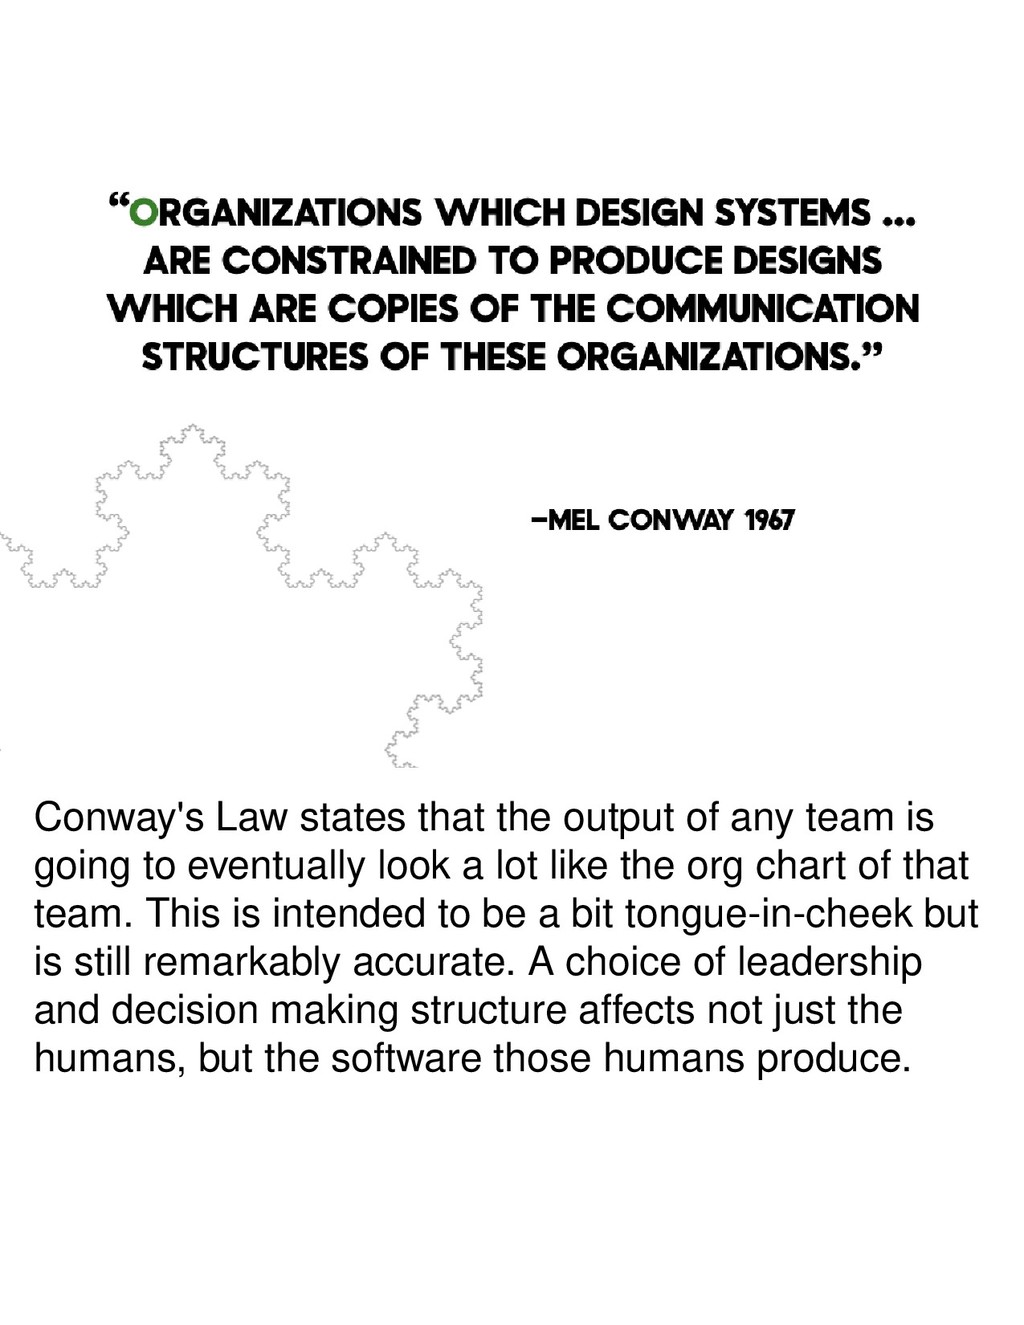 Conway's Law states that the output of any team...